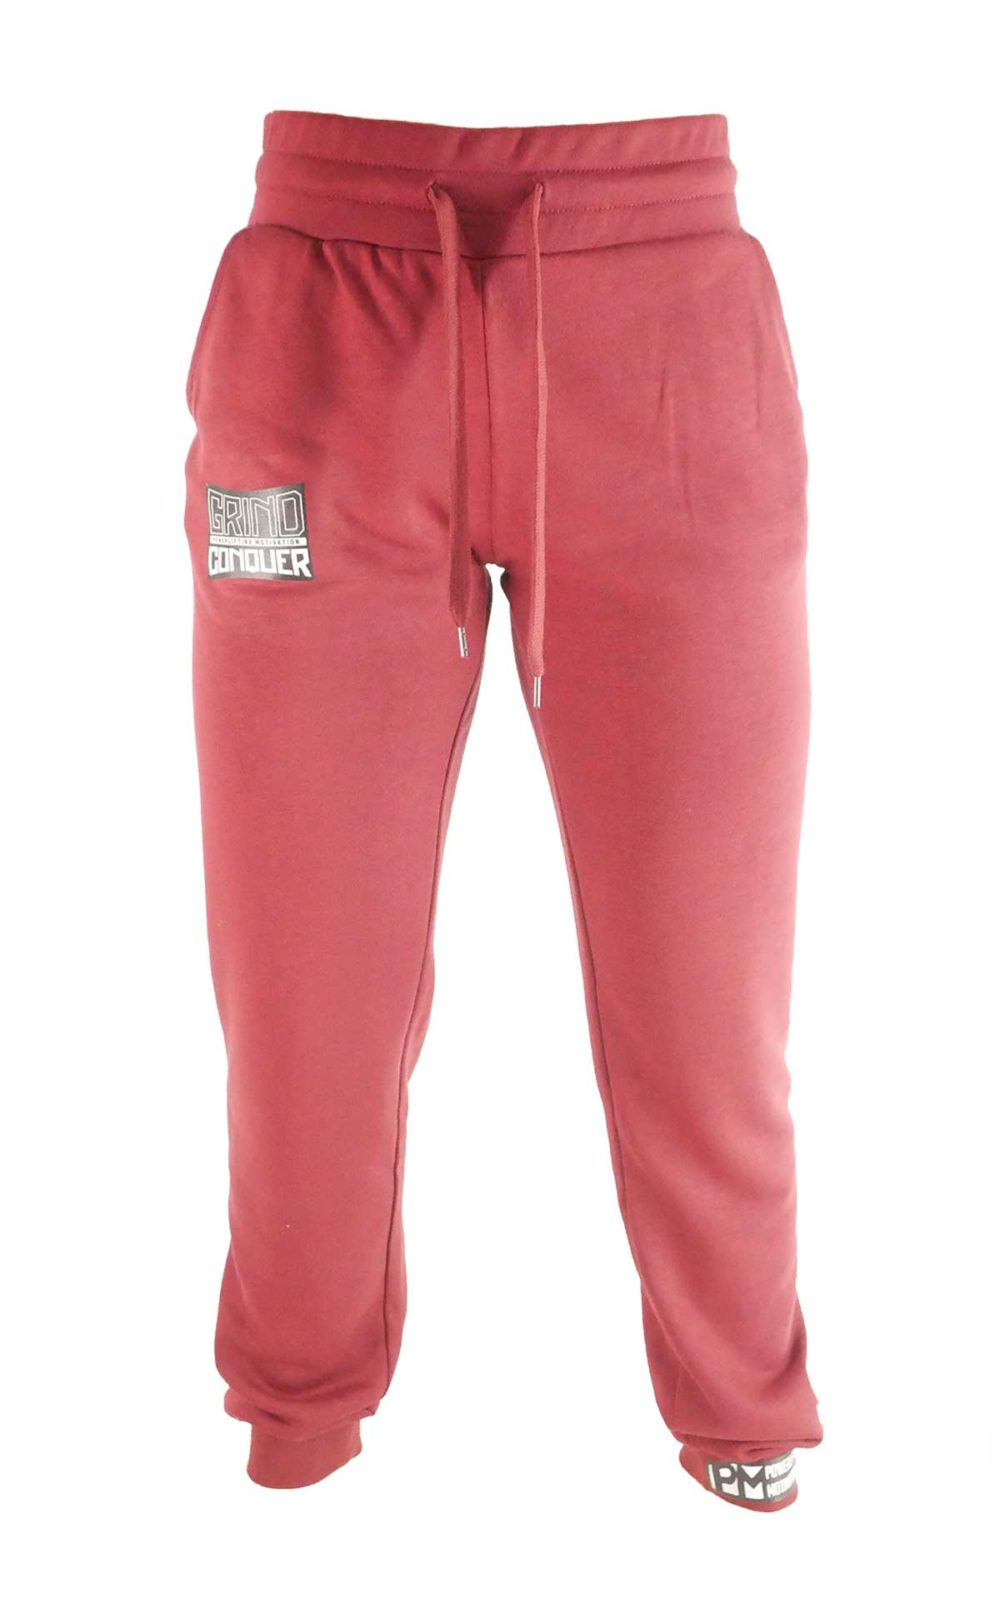 PM women's jogger pants carriage red